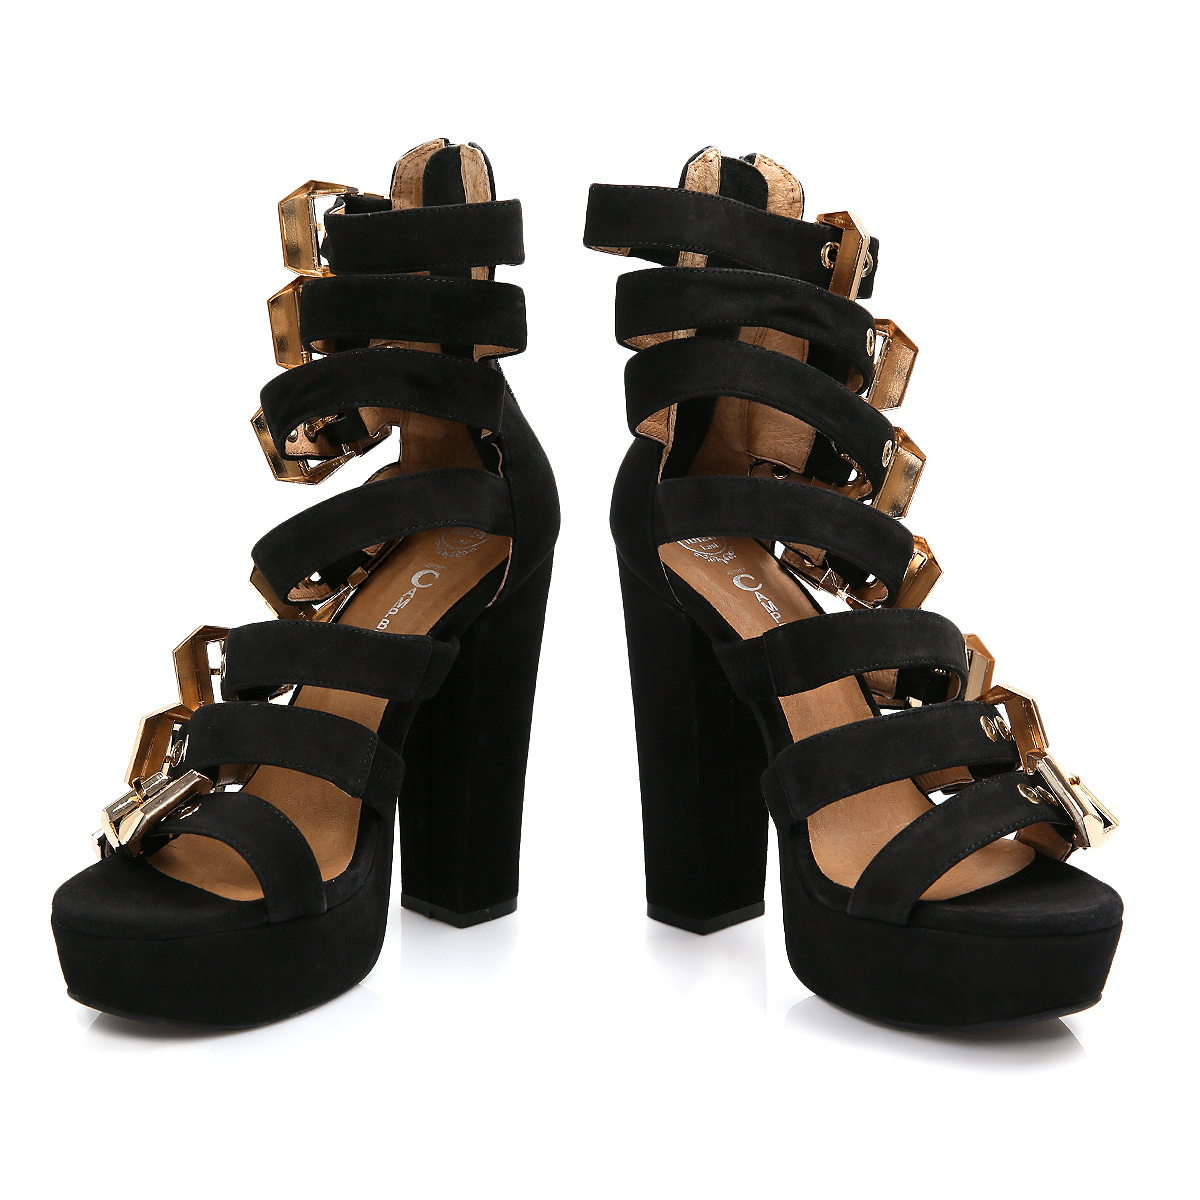 Jeffrey Campbell Donata Black Suede High Heels Gold Buckle Shoes Size 3 8   eBay